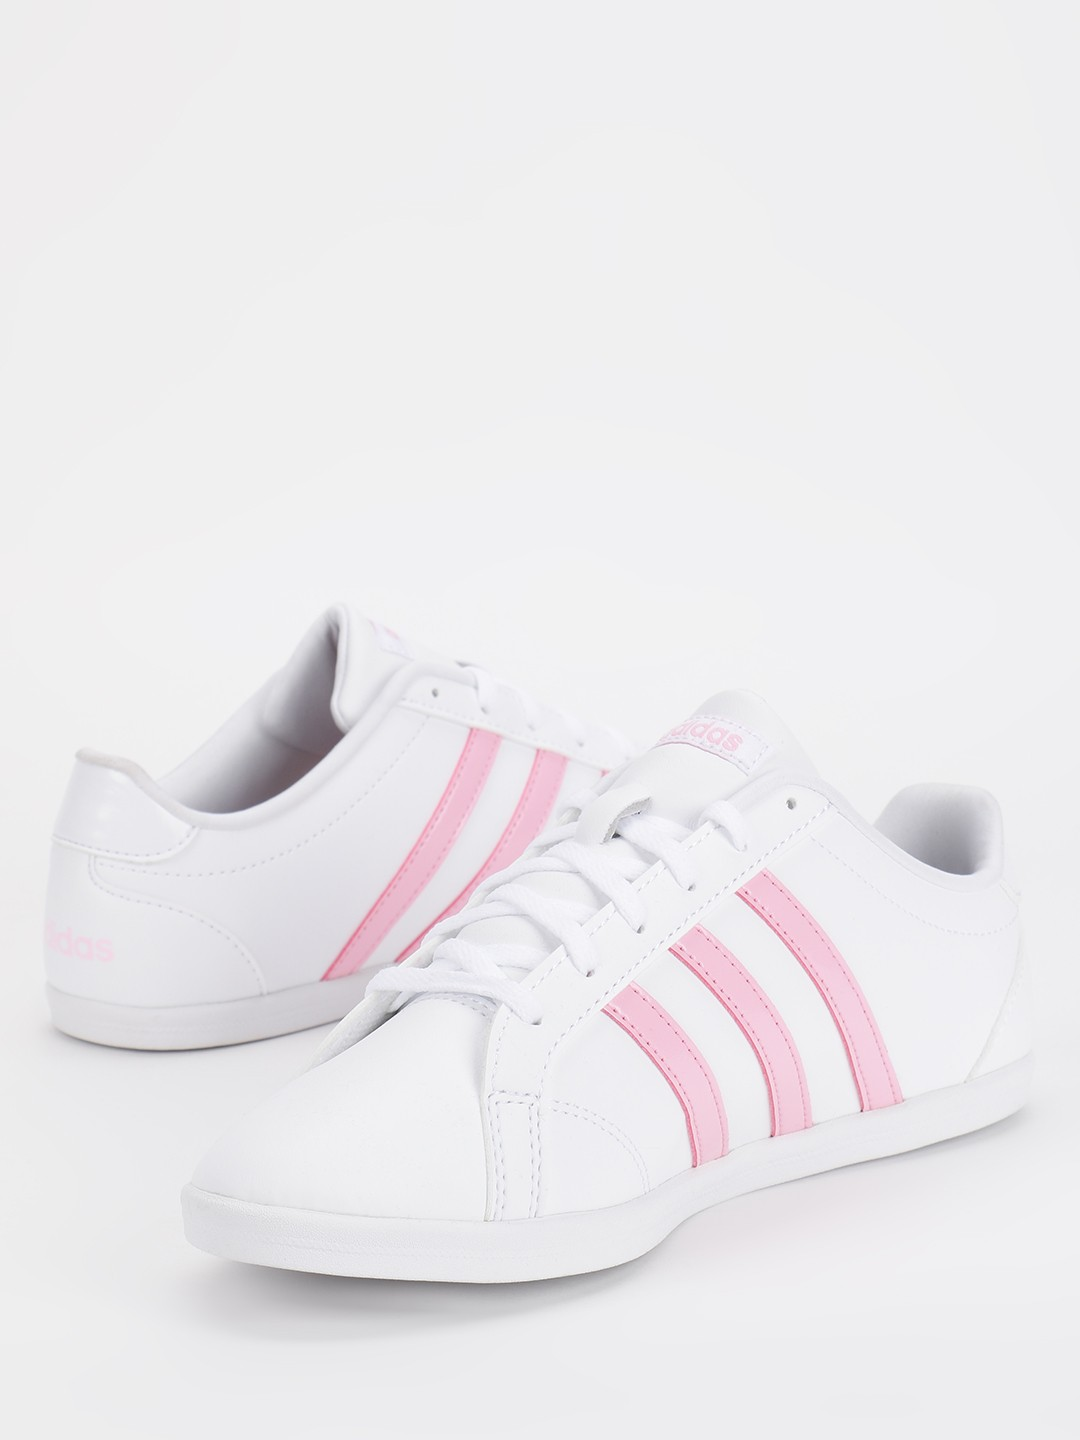 Buy Adidas White Coneo Qt Shoes for Girls Online in India